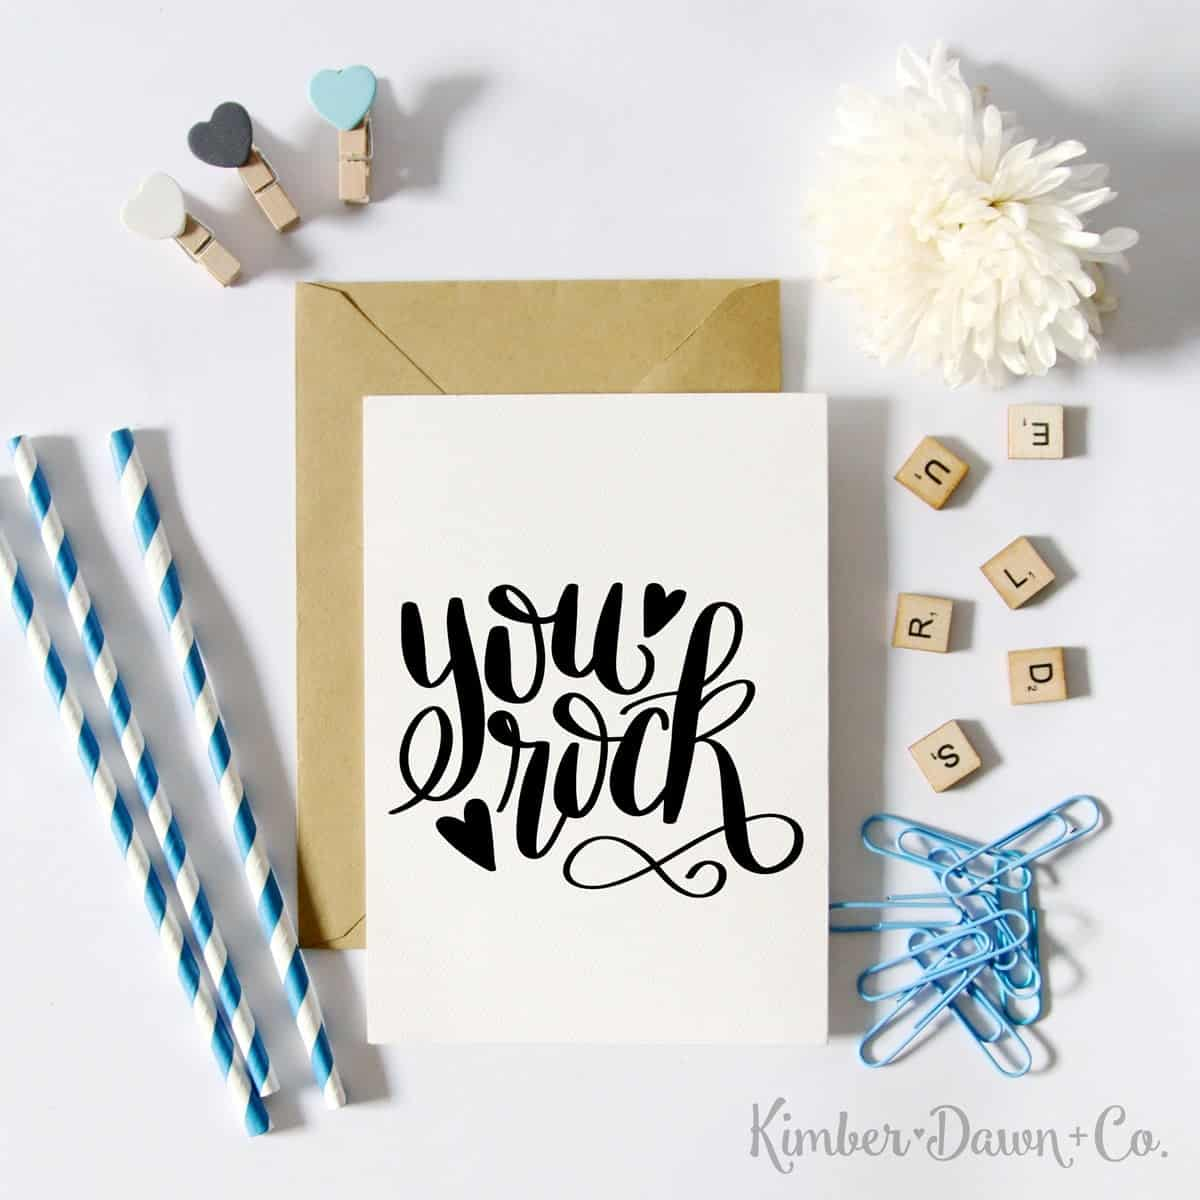 You Rock- Free Cut File for Silhouette CAMEO + Cricut crafts